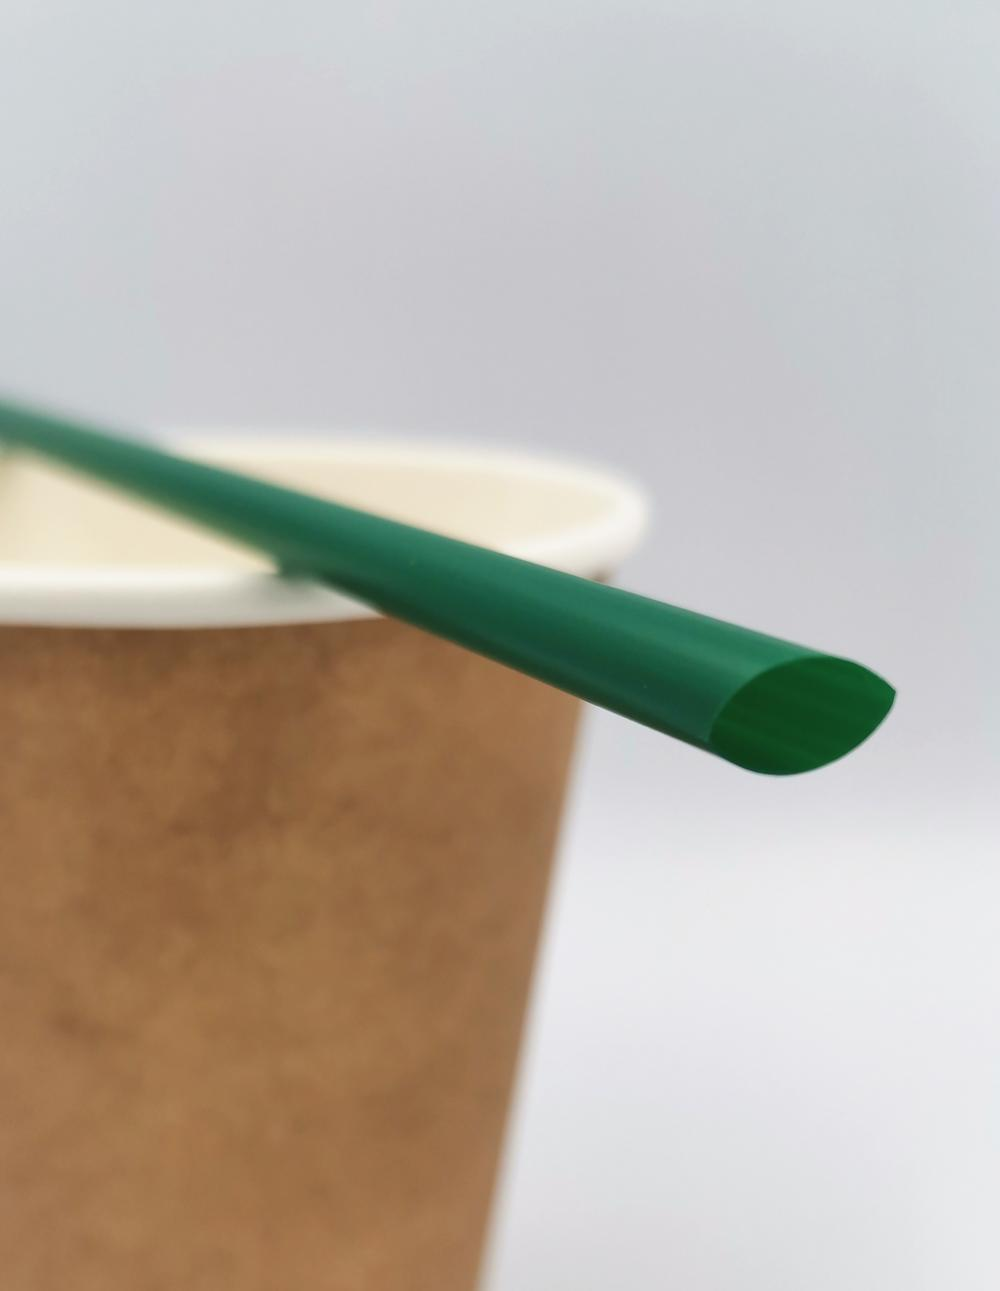 100% Biodegradable Plastic Drinking straw